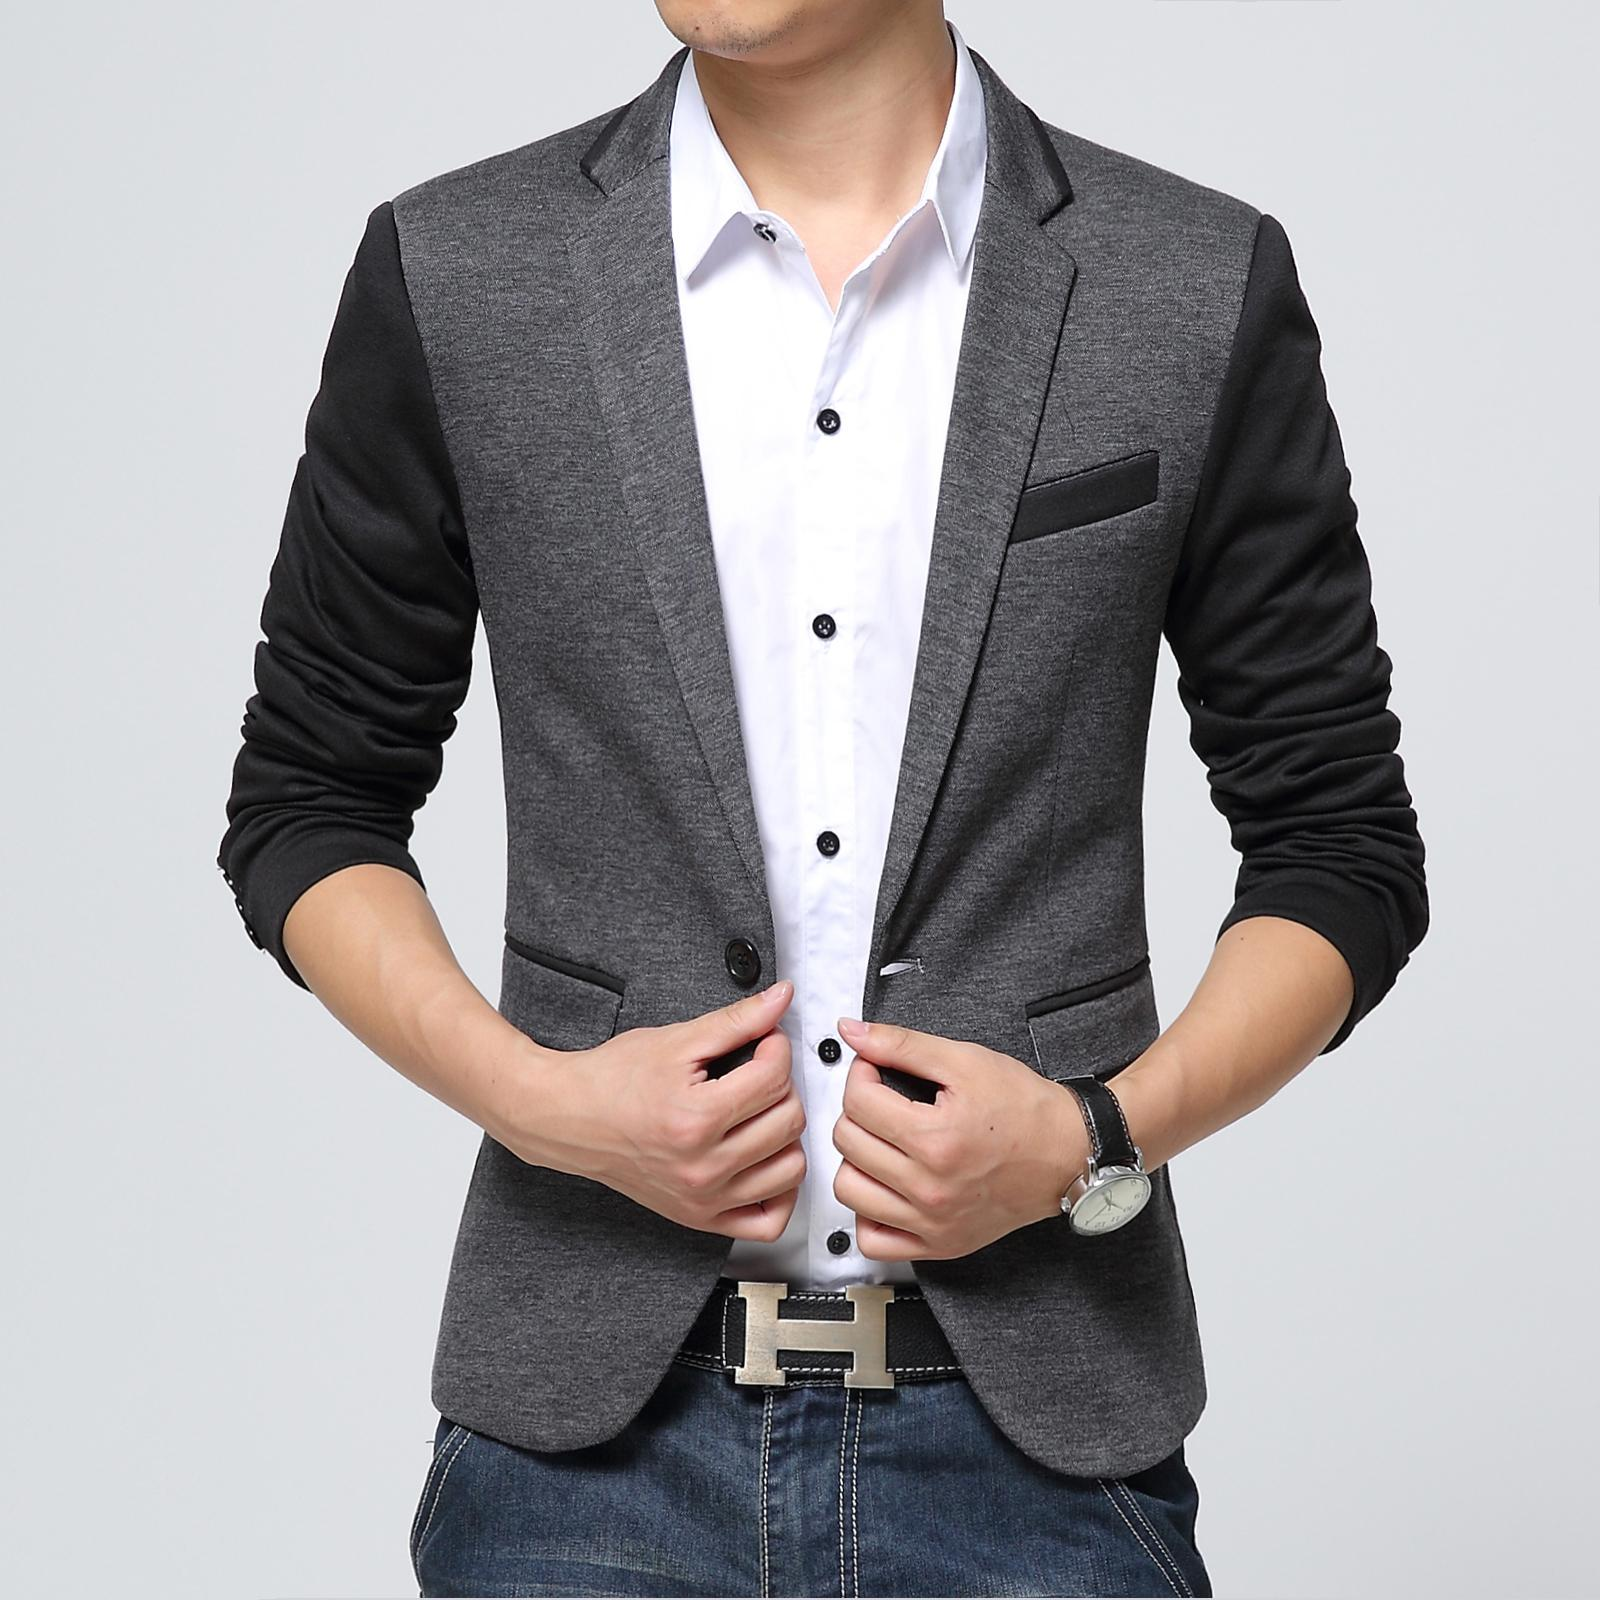 Online Cheap New Style Men Blazer 2016 Suit Men Brand Casual Jacket Latest Coat Designs Leather ...